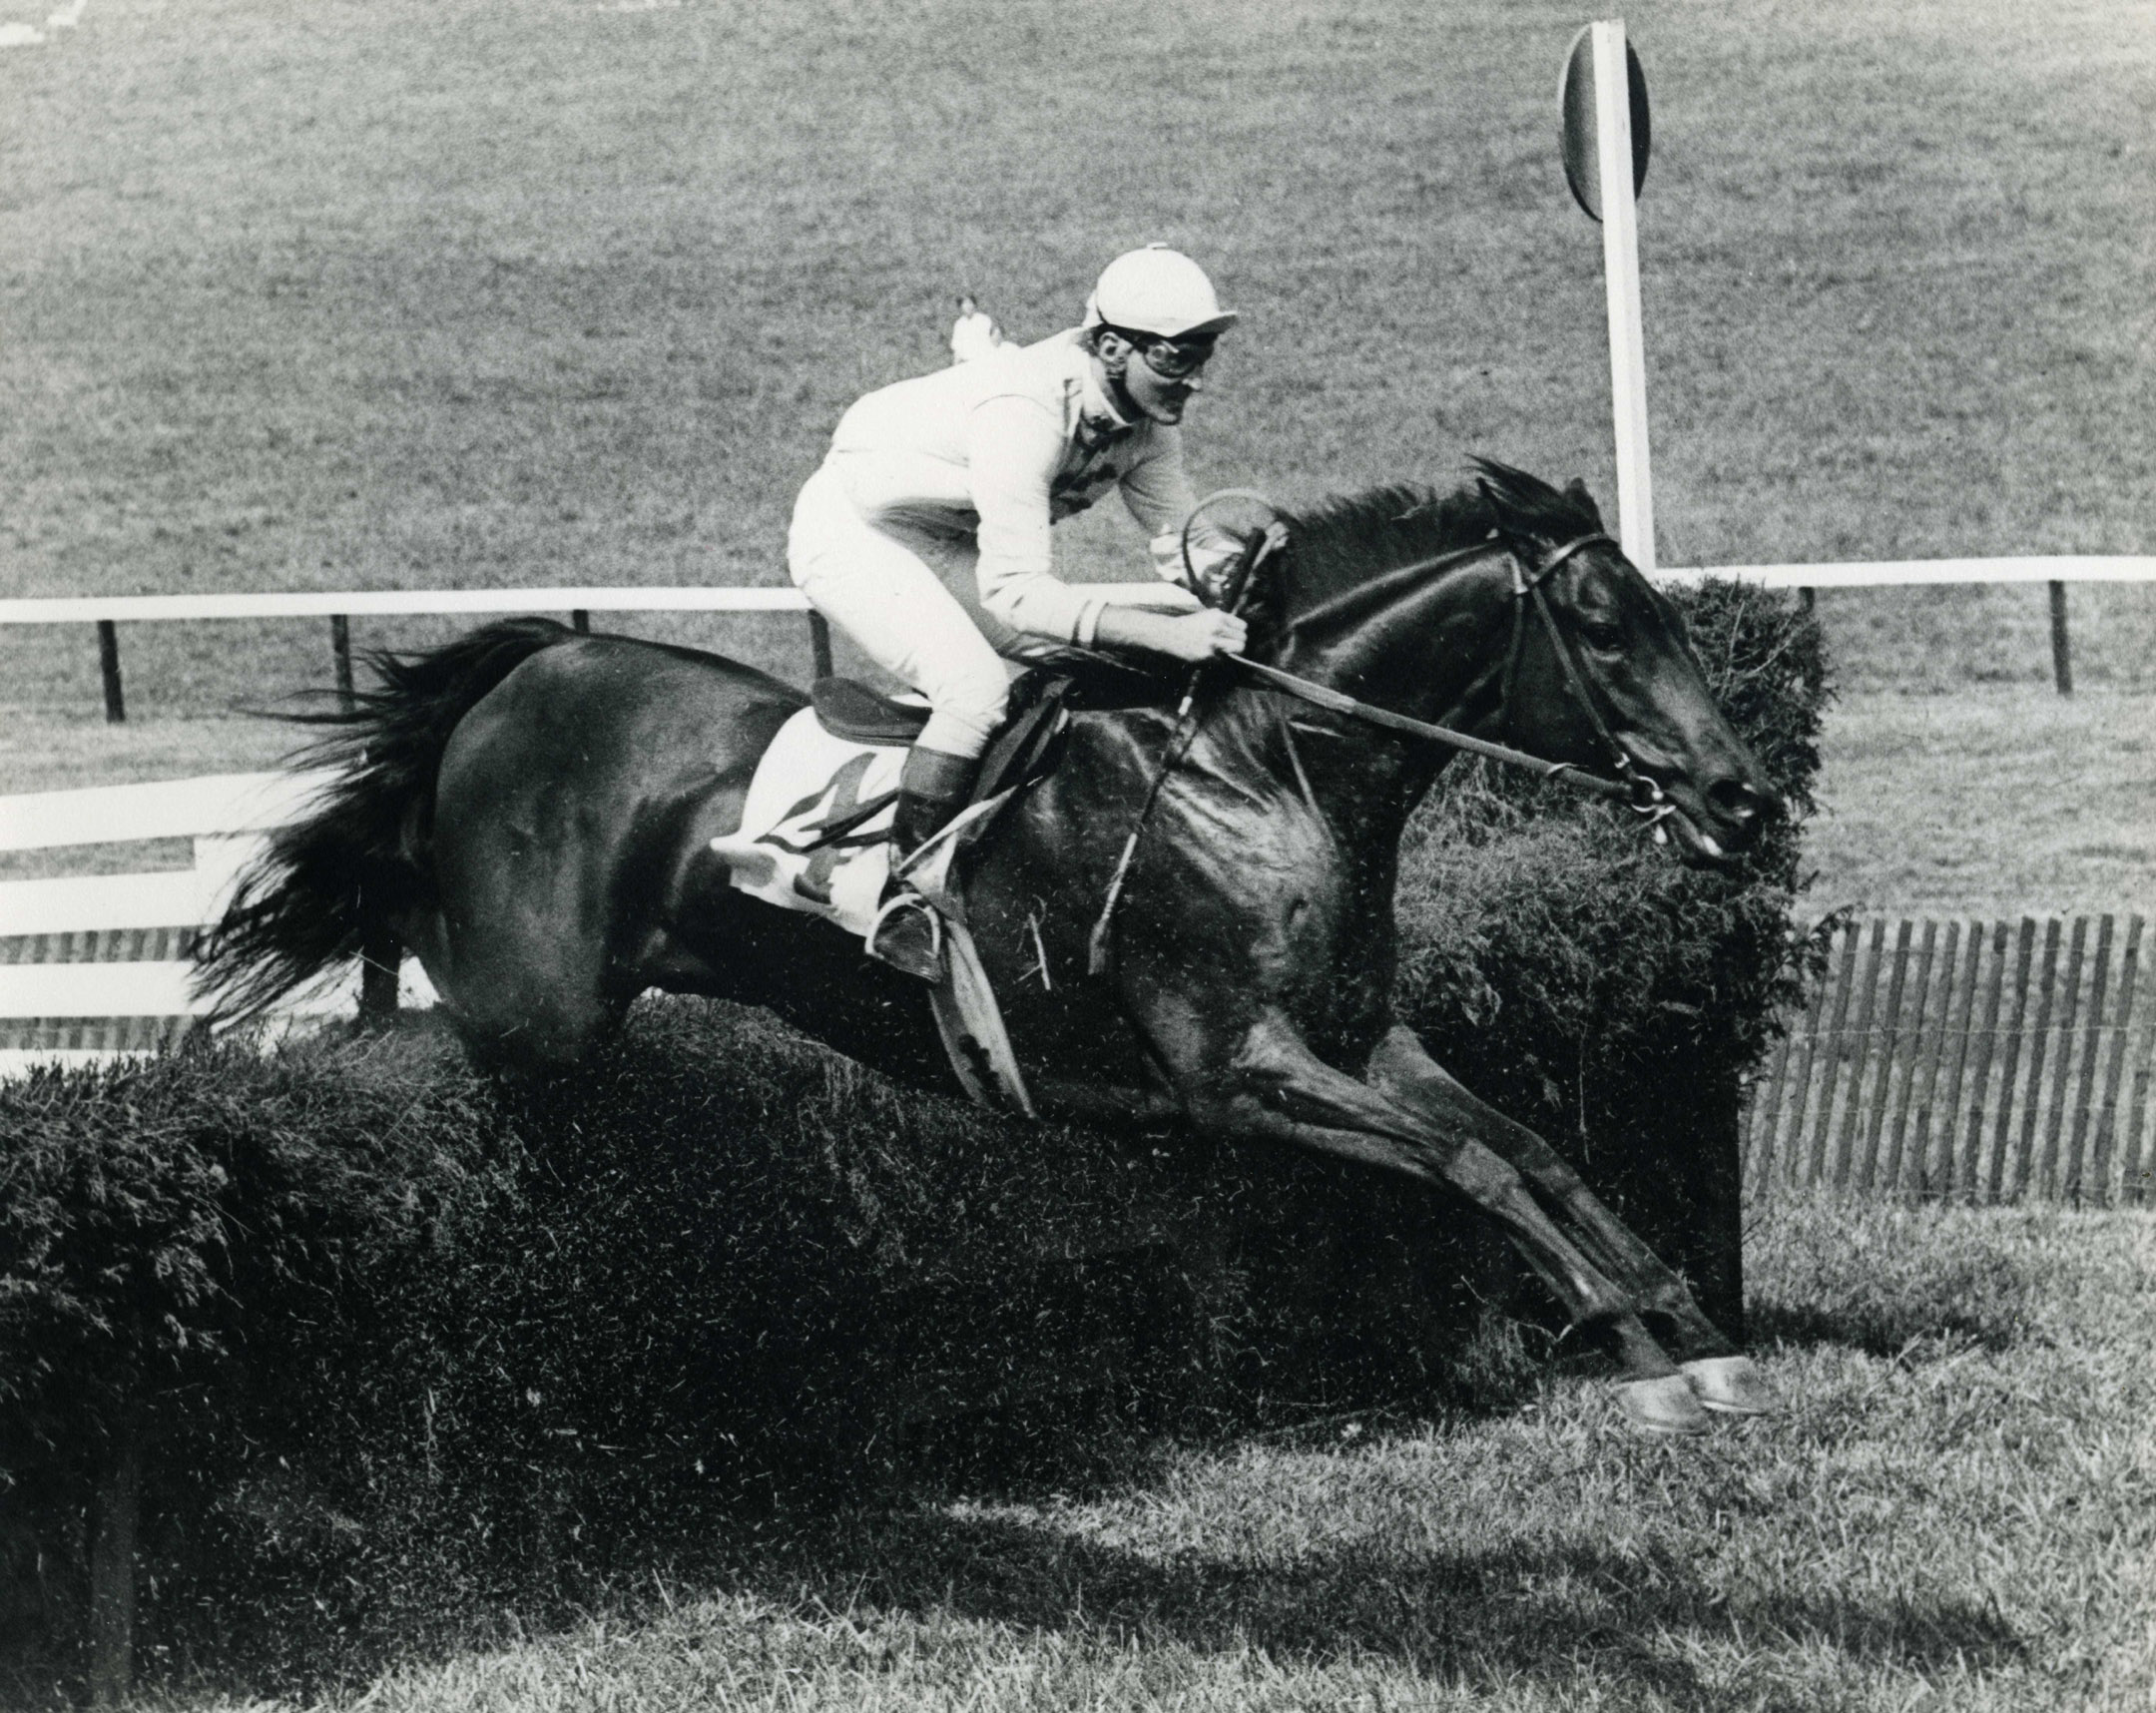 Jerry Fishback aboard Leaping Frog in the Albemarle at Foxfield, September 1978 (Douglas Lees/Museum Collection)